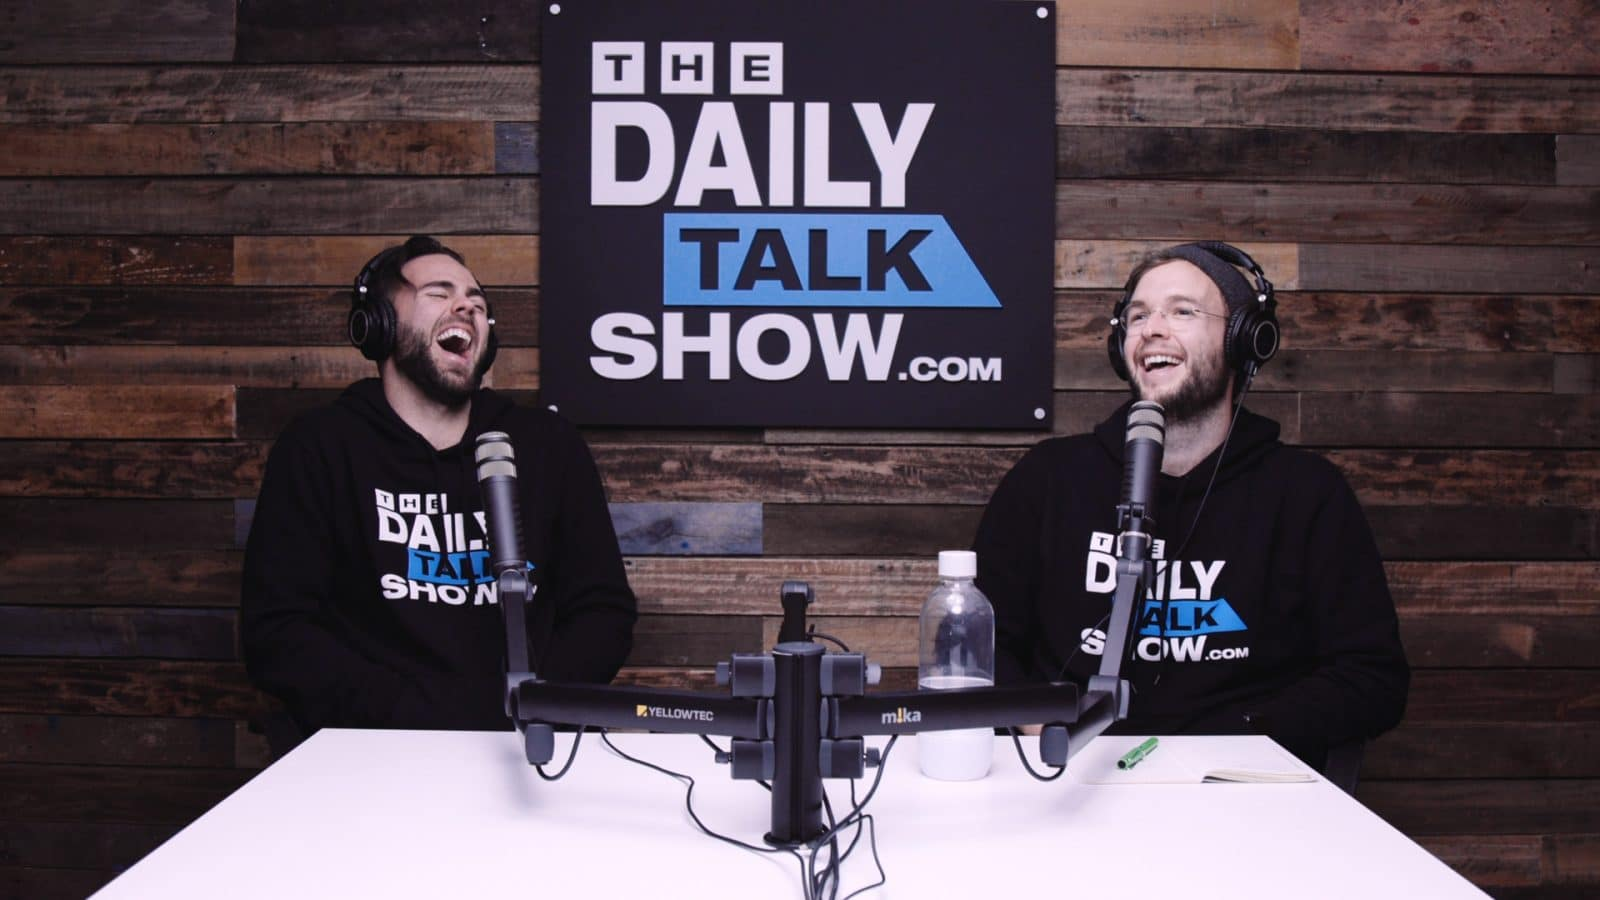 The-Daily-Talk-Show-439